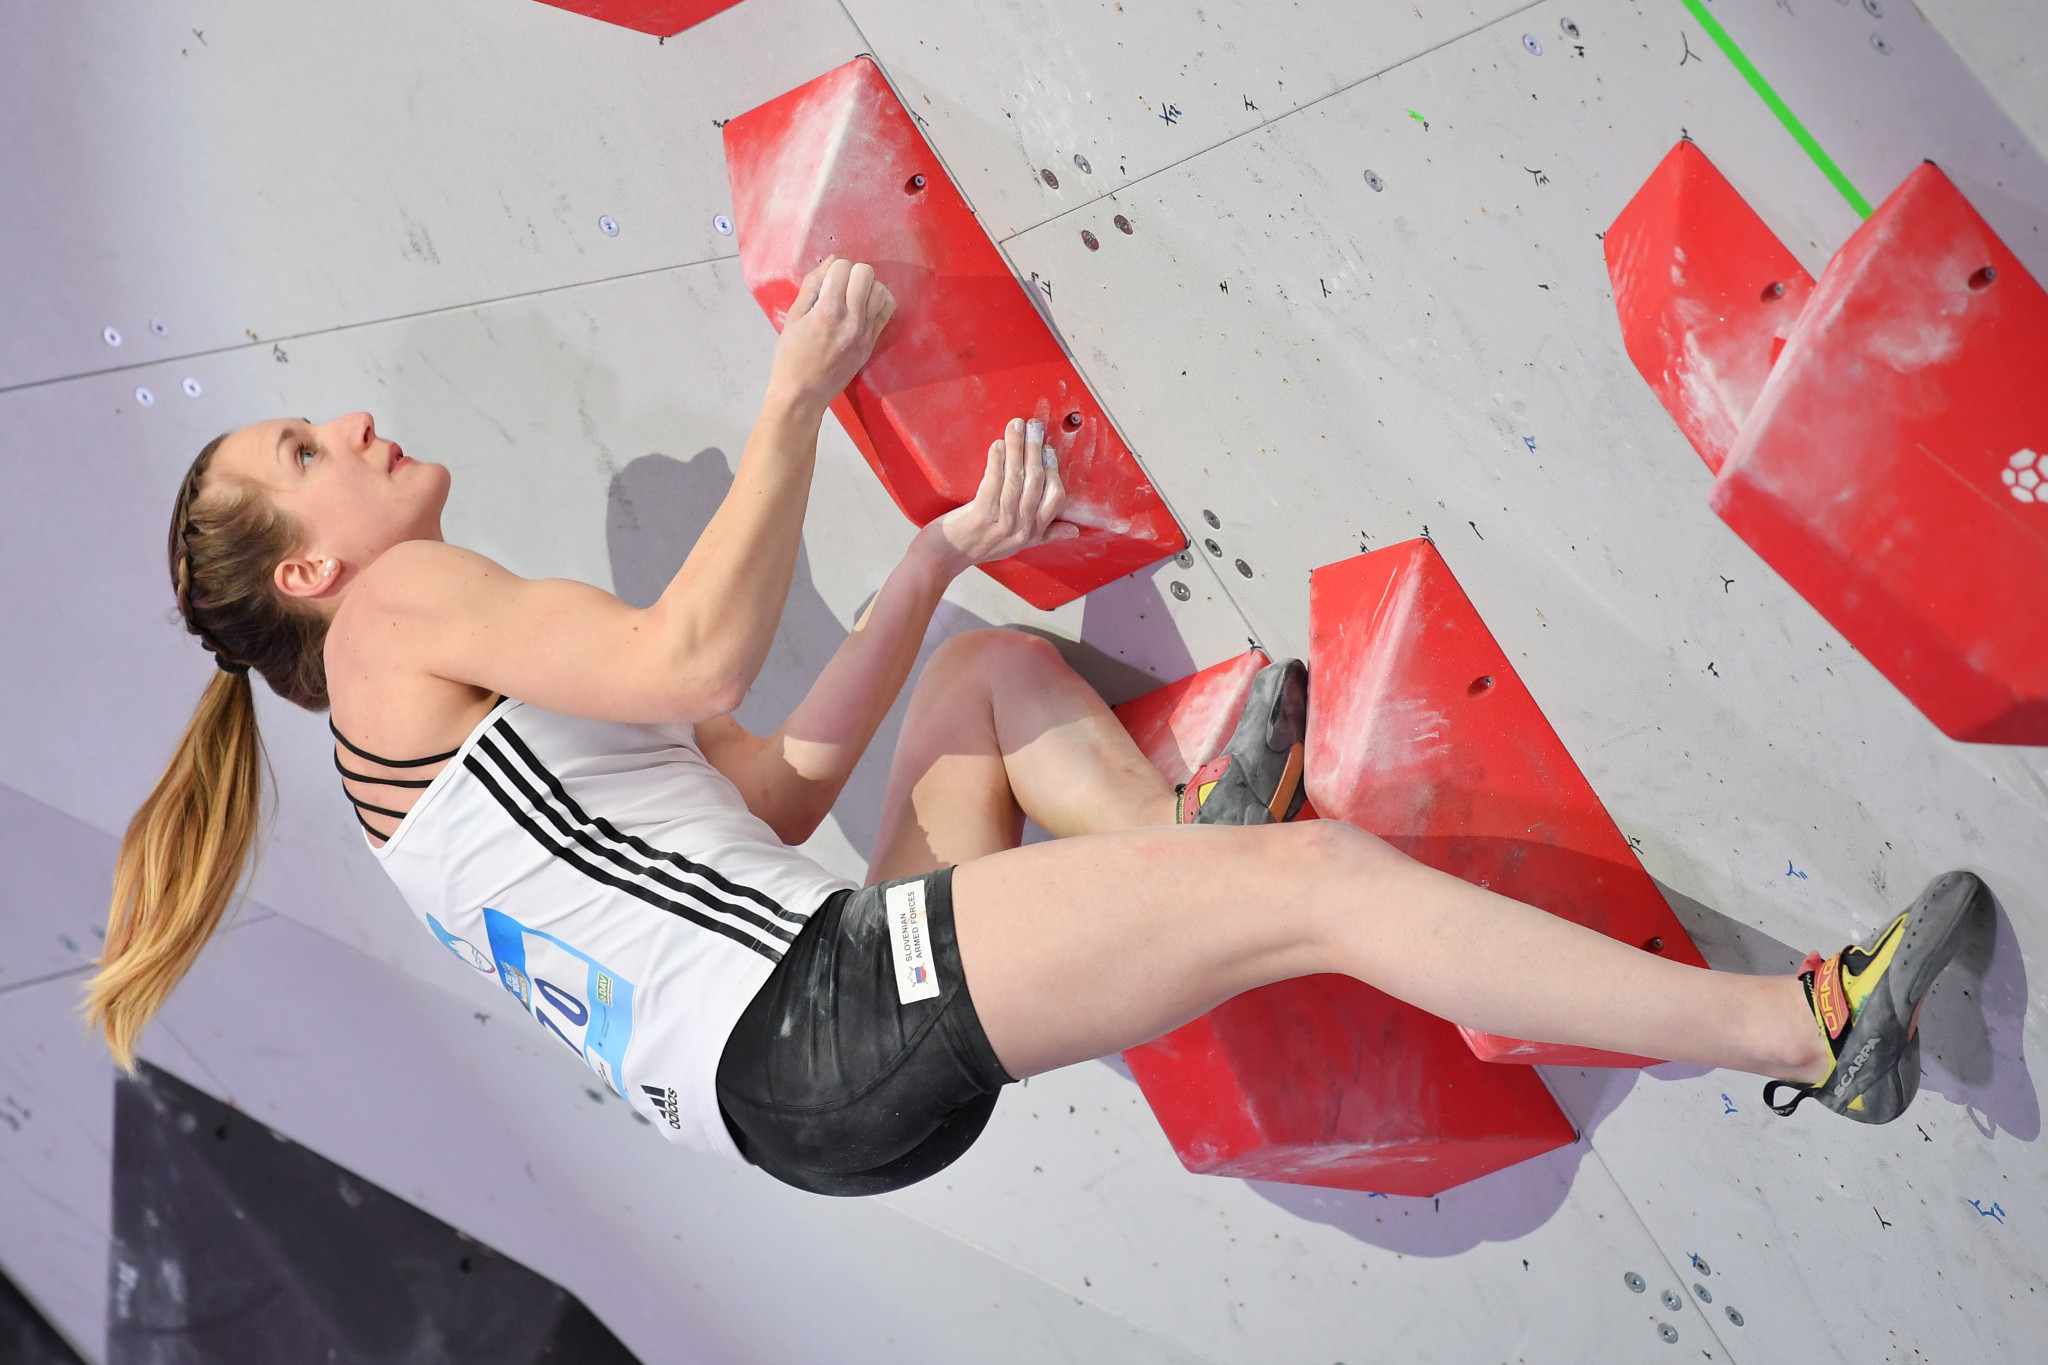 Mitchell Stafford Management to advise IFSC as it prepares to make Olympic debut at Tokyo 2020